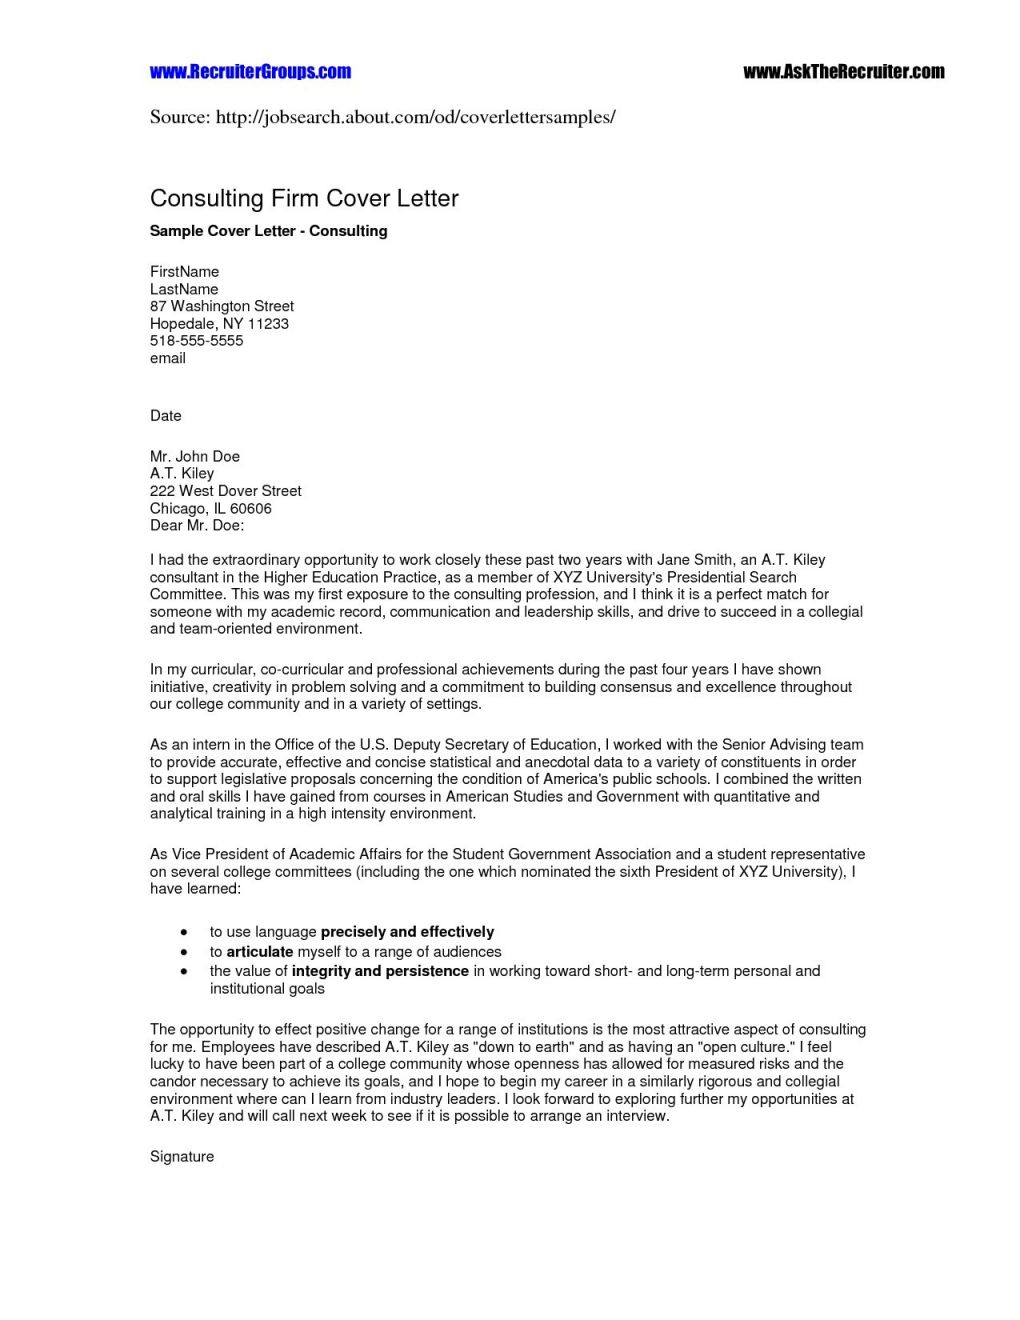 Letter of engagement template consultant samples letter for Letter of engagement consulting template